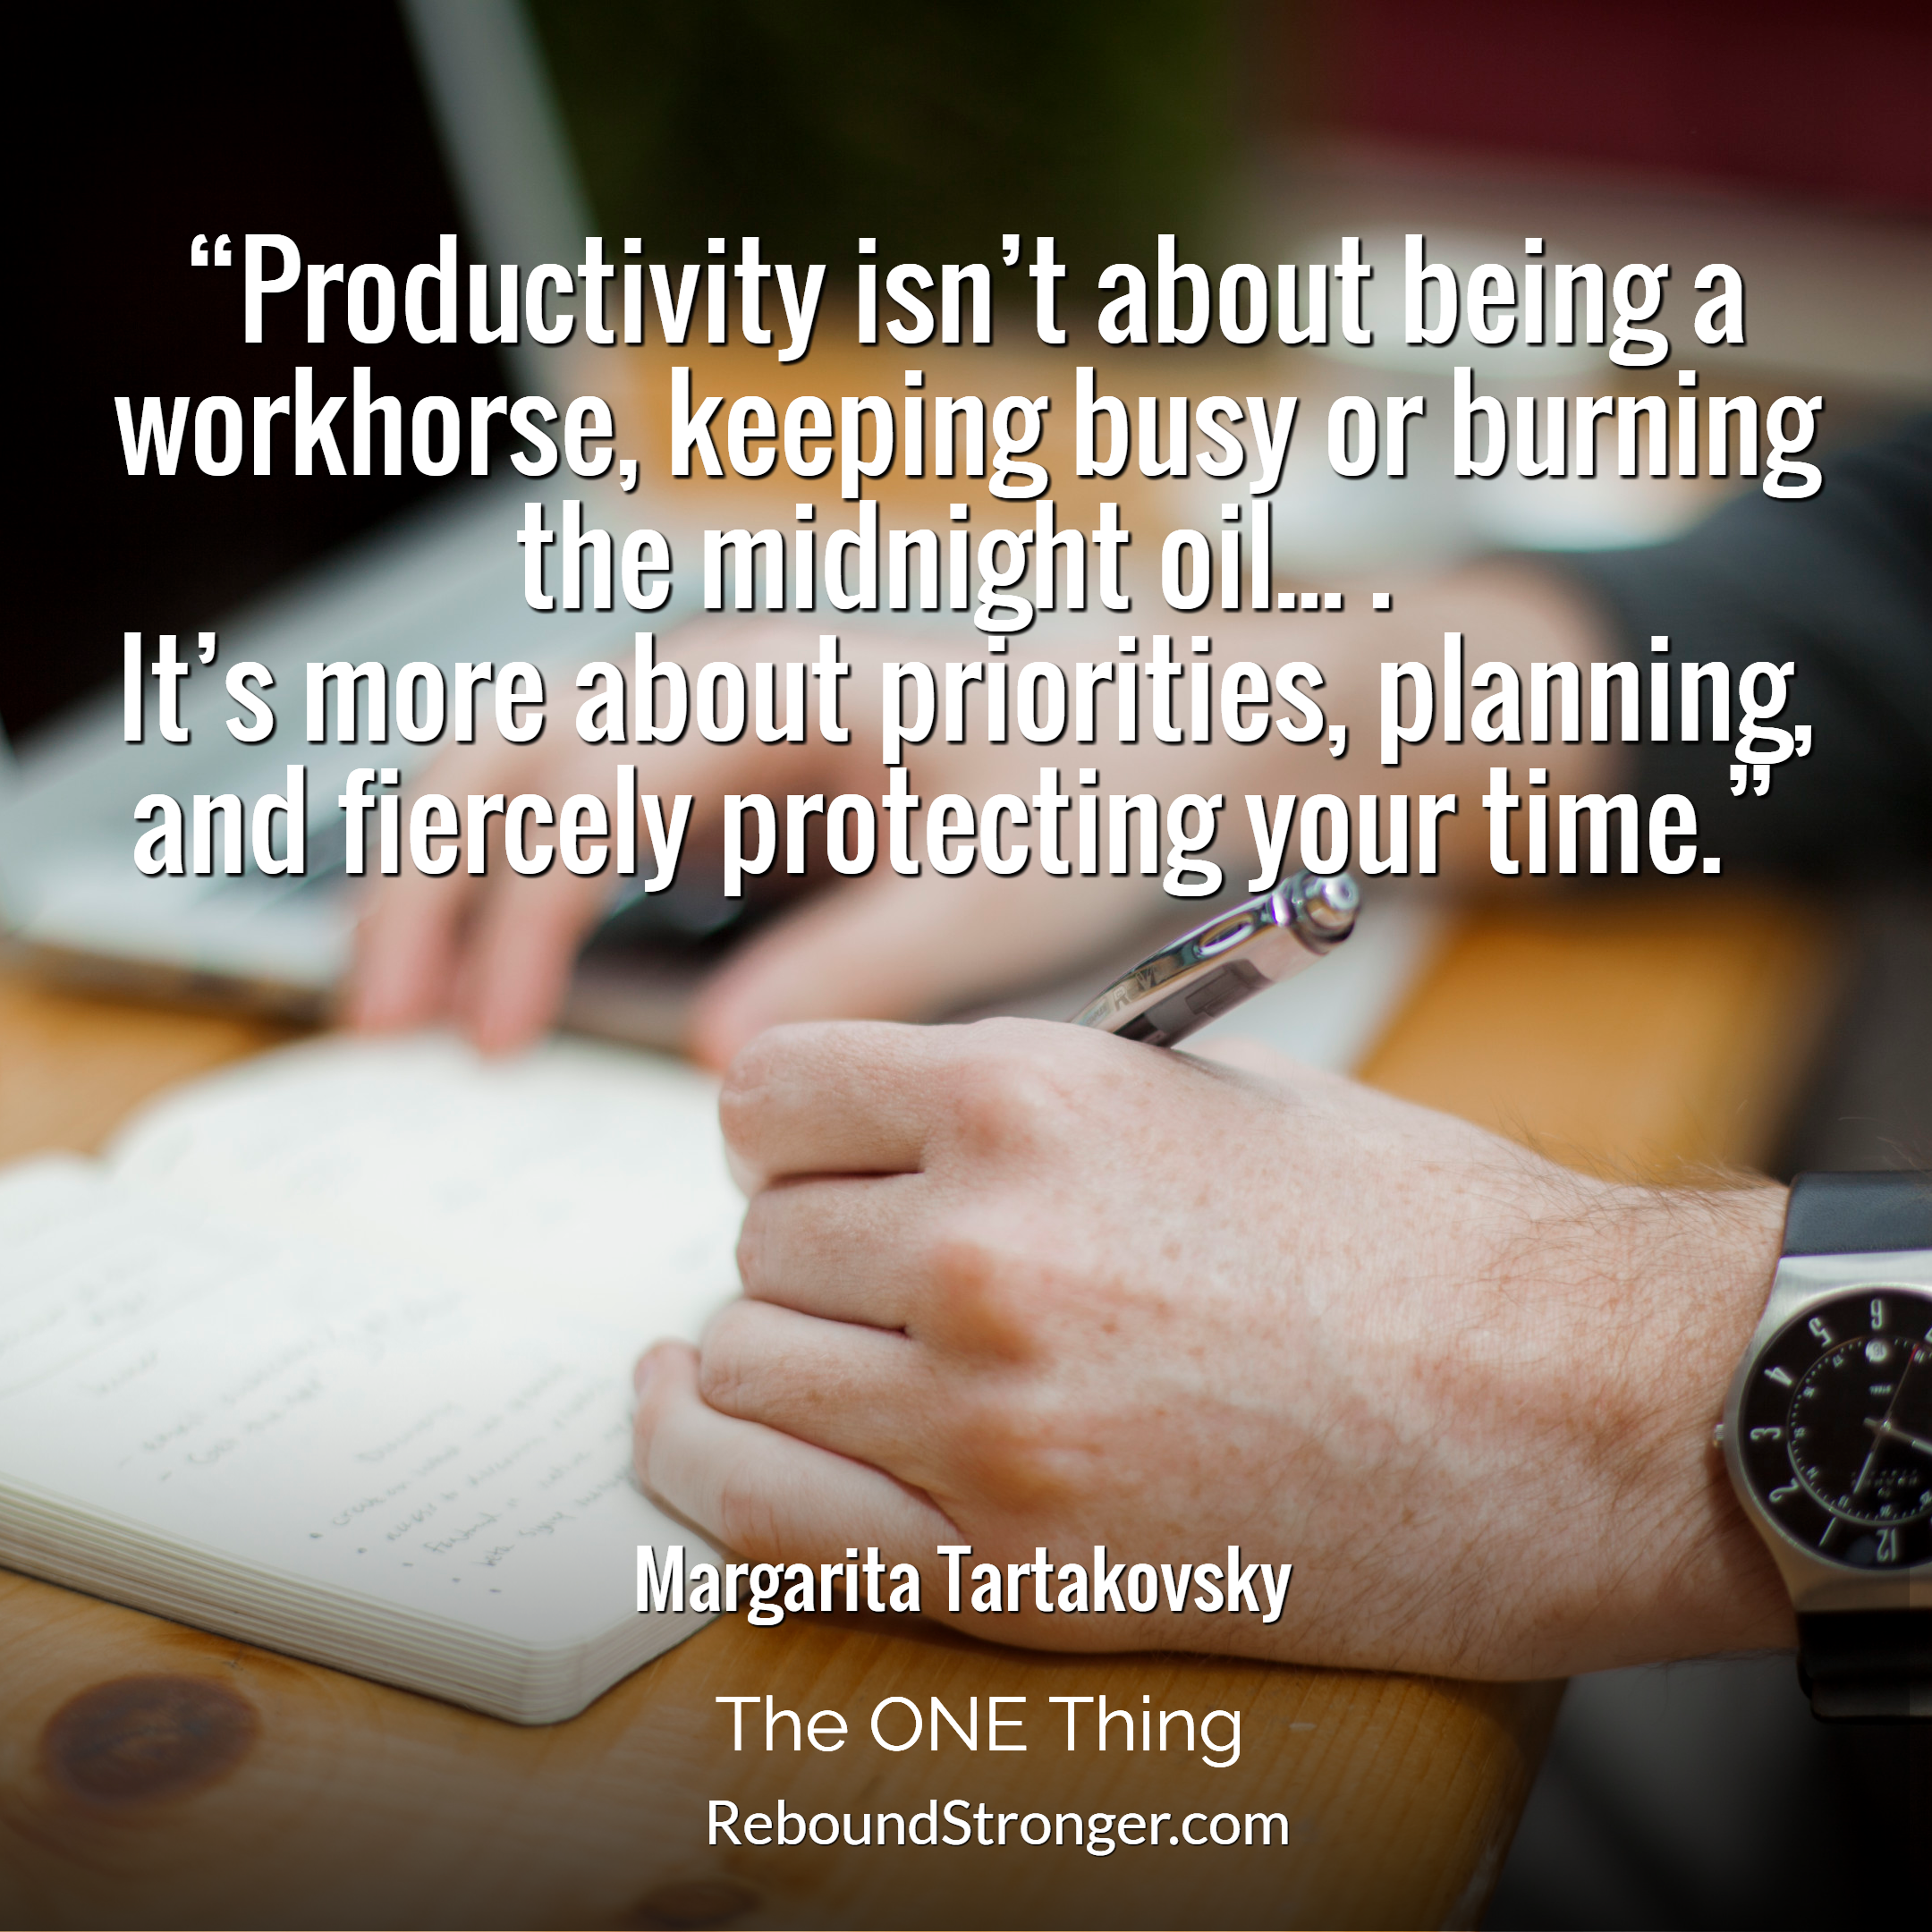 Productivity Isnt About Being A Workhorse, Keeping Busy Or Burning